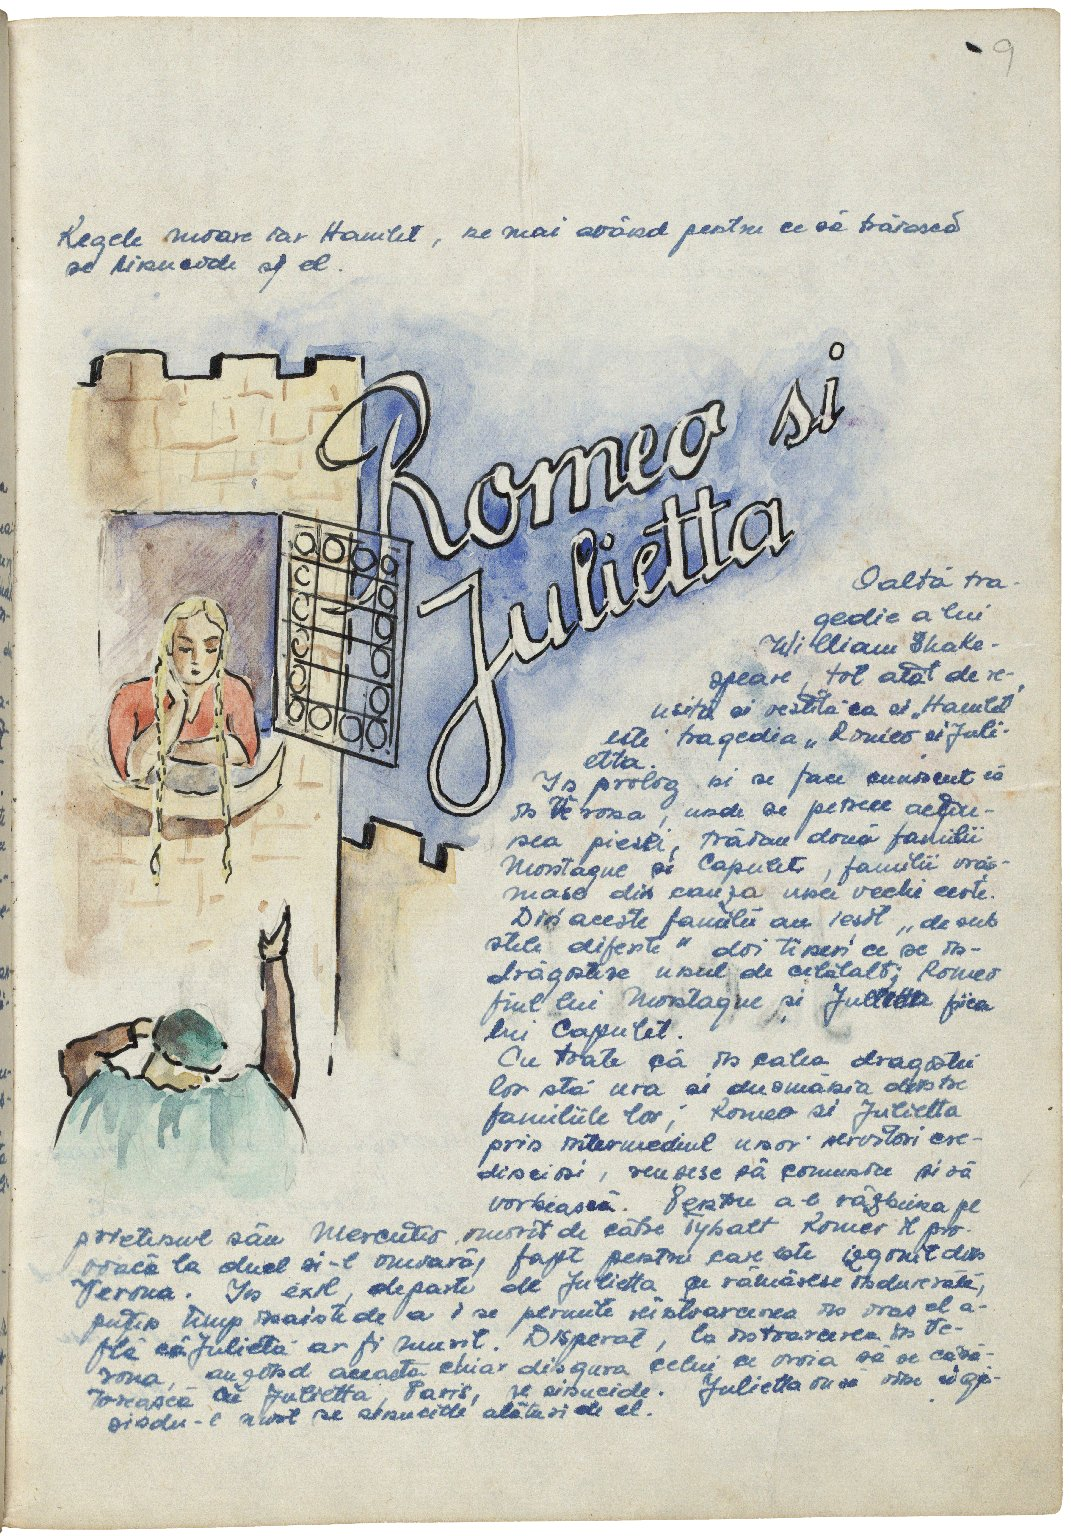 Lecturi Particulare [Manuscript notebook of drawings and synopses of world literature with dated criticism from a tutor.] [manuscript]